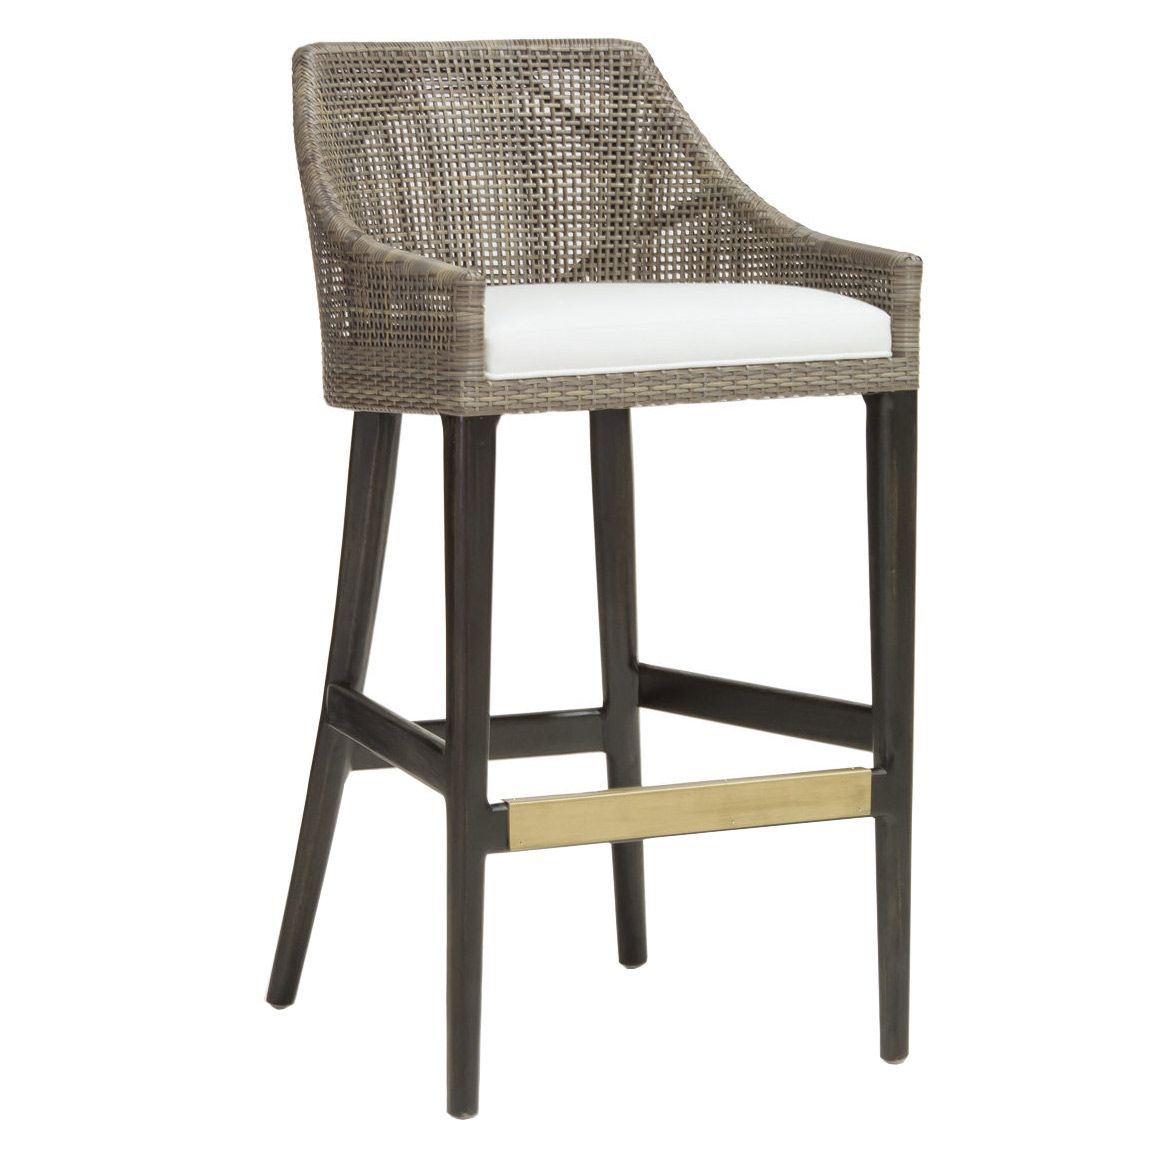 The Palecek Vincent Counter Bar Stool Minimum Purchase Of 2